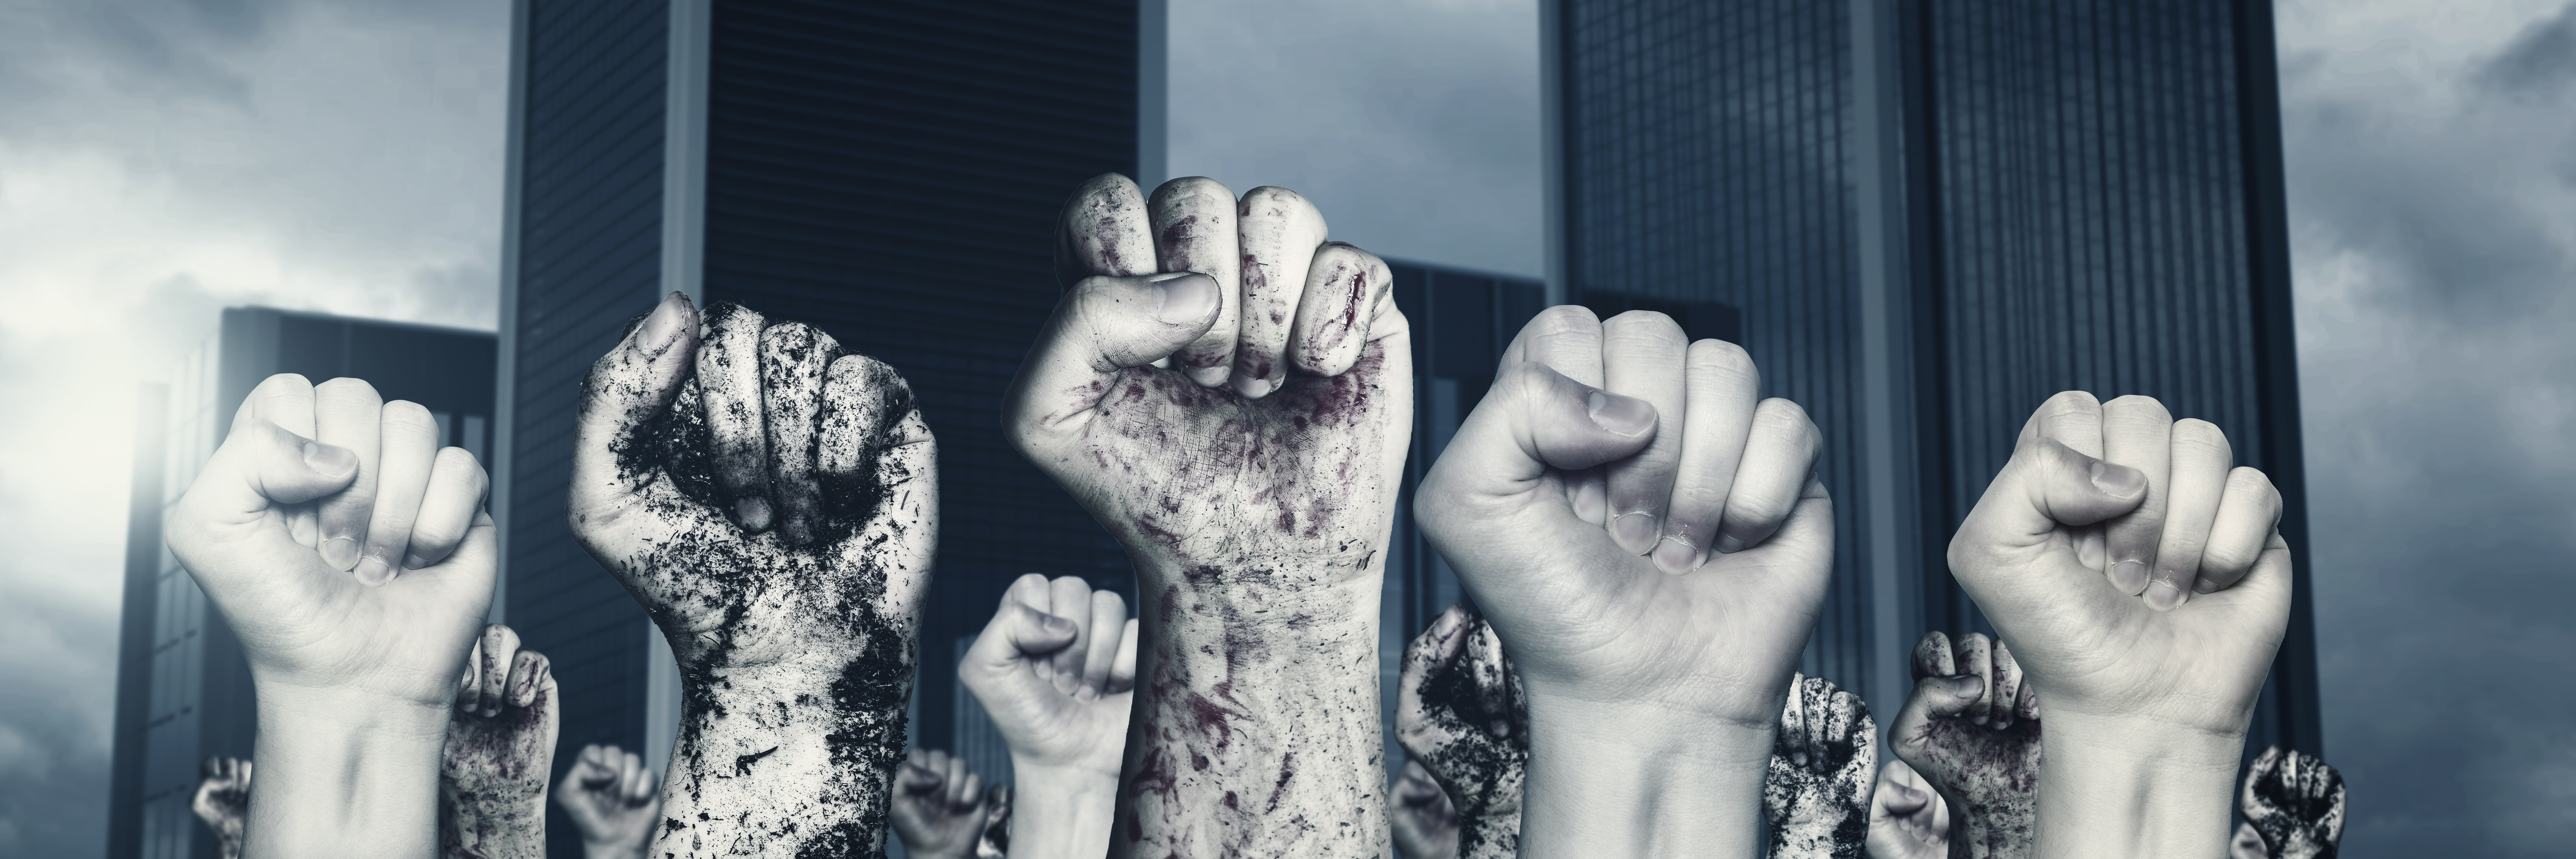 Hate Group Activity: An HR Perspective